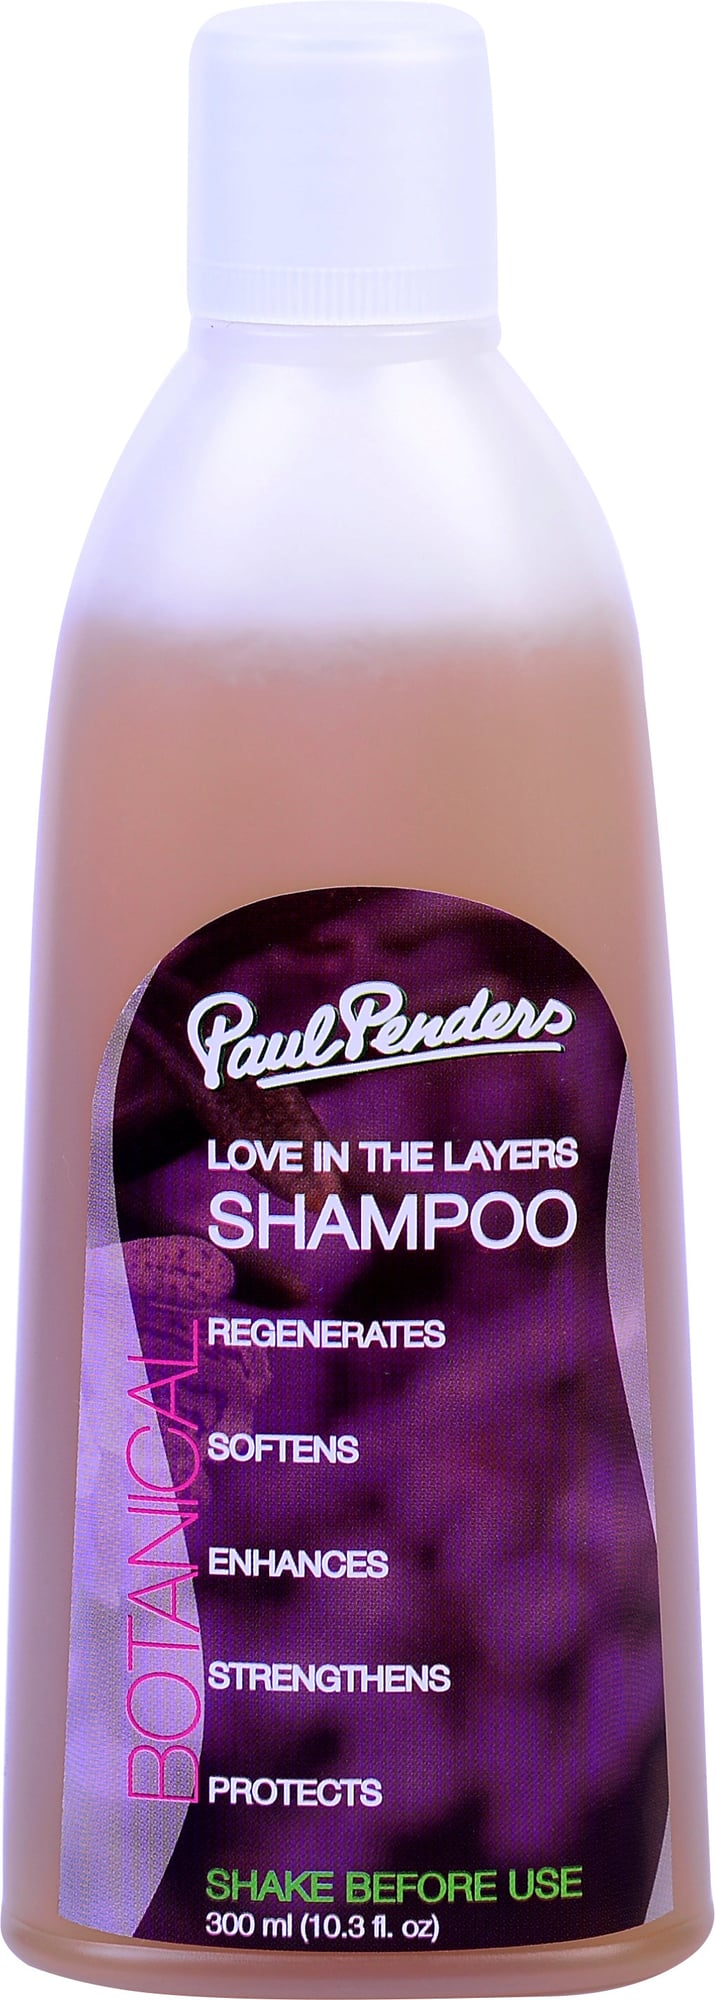 [MPLUS] Paul Penders Love In The Layers Shampoo 300Ml